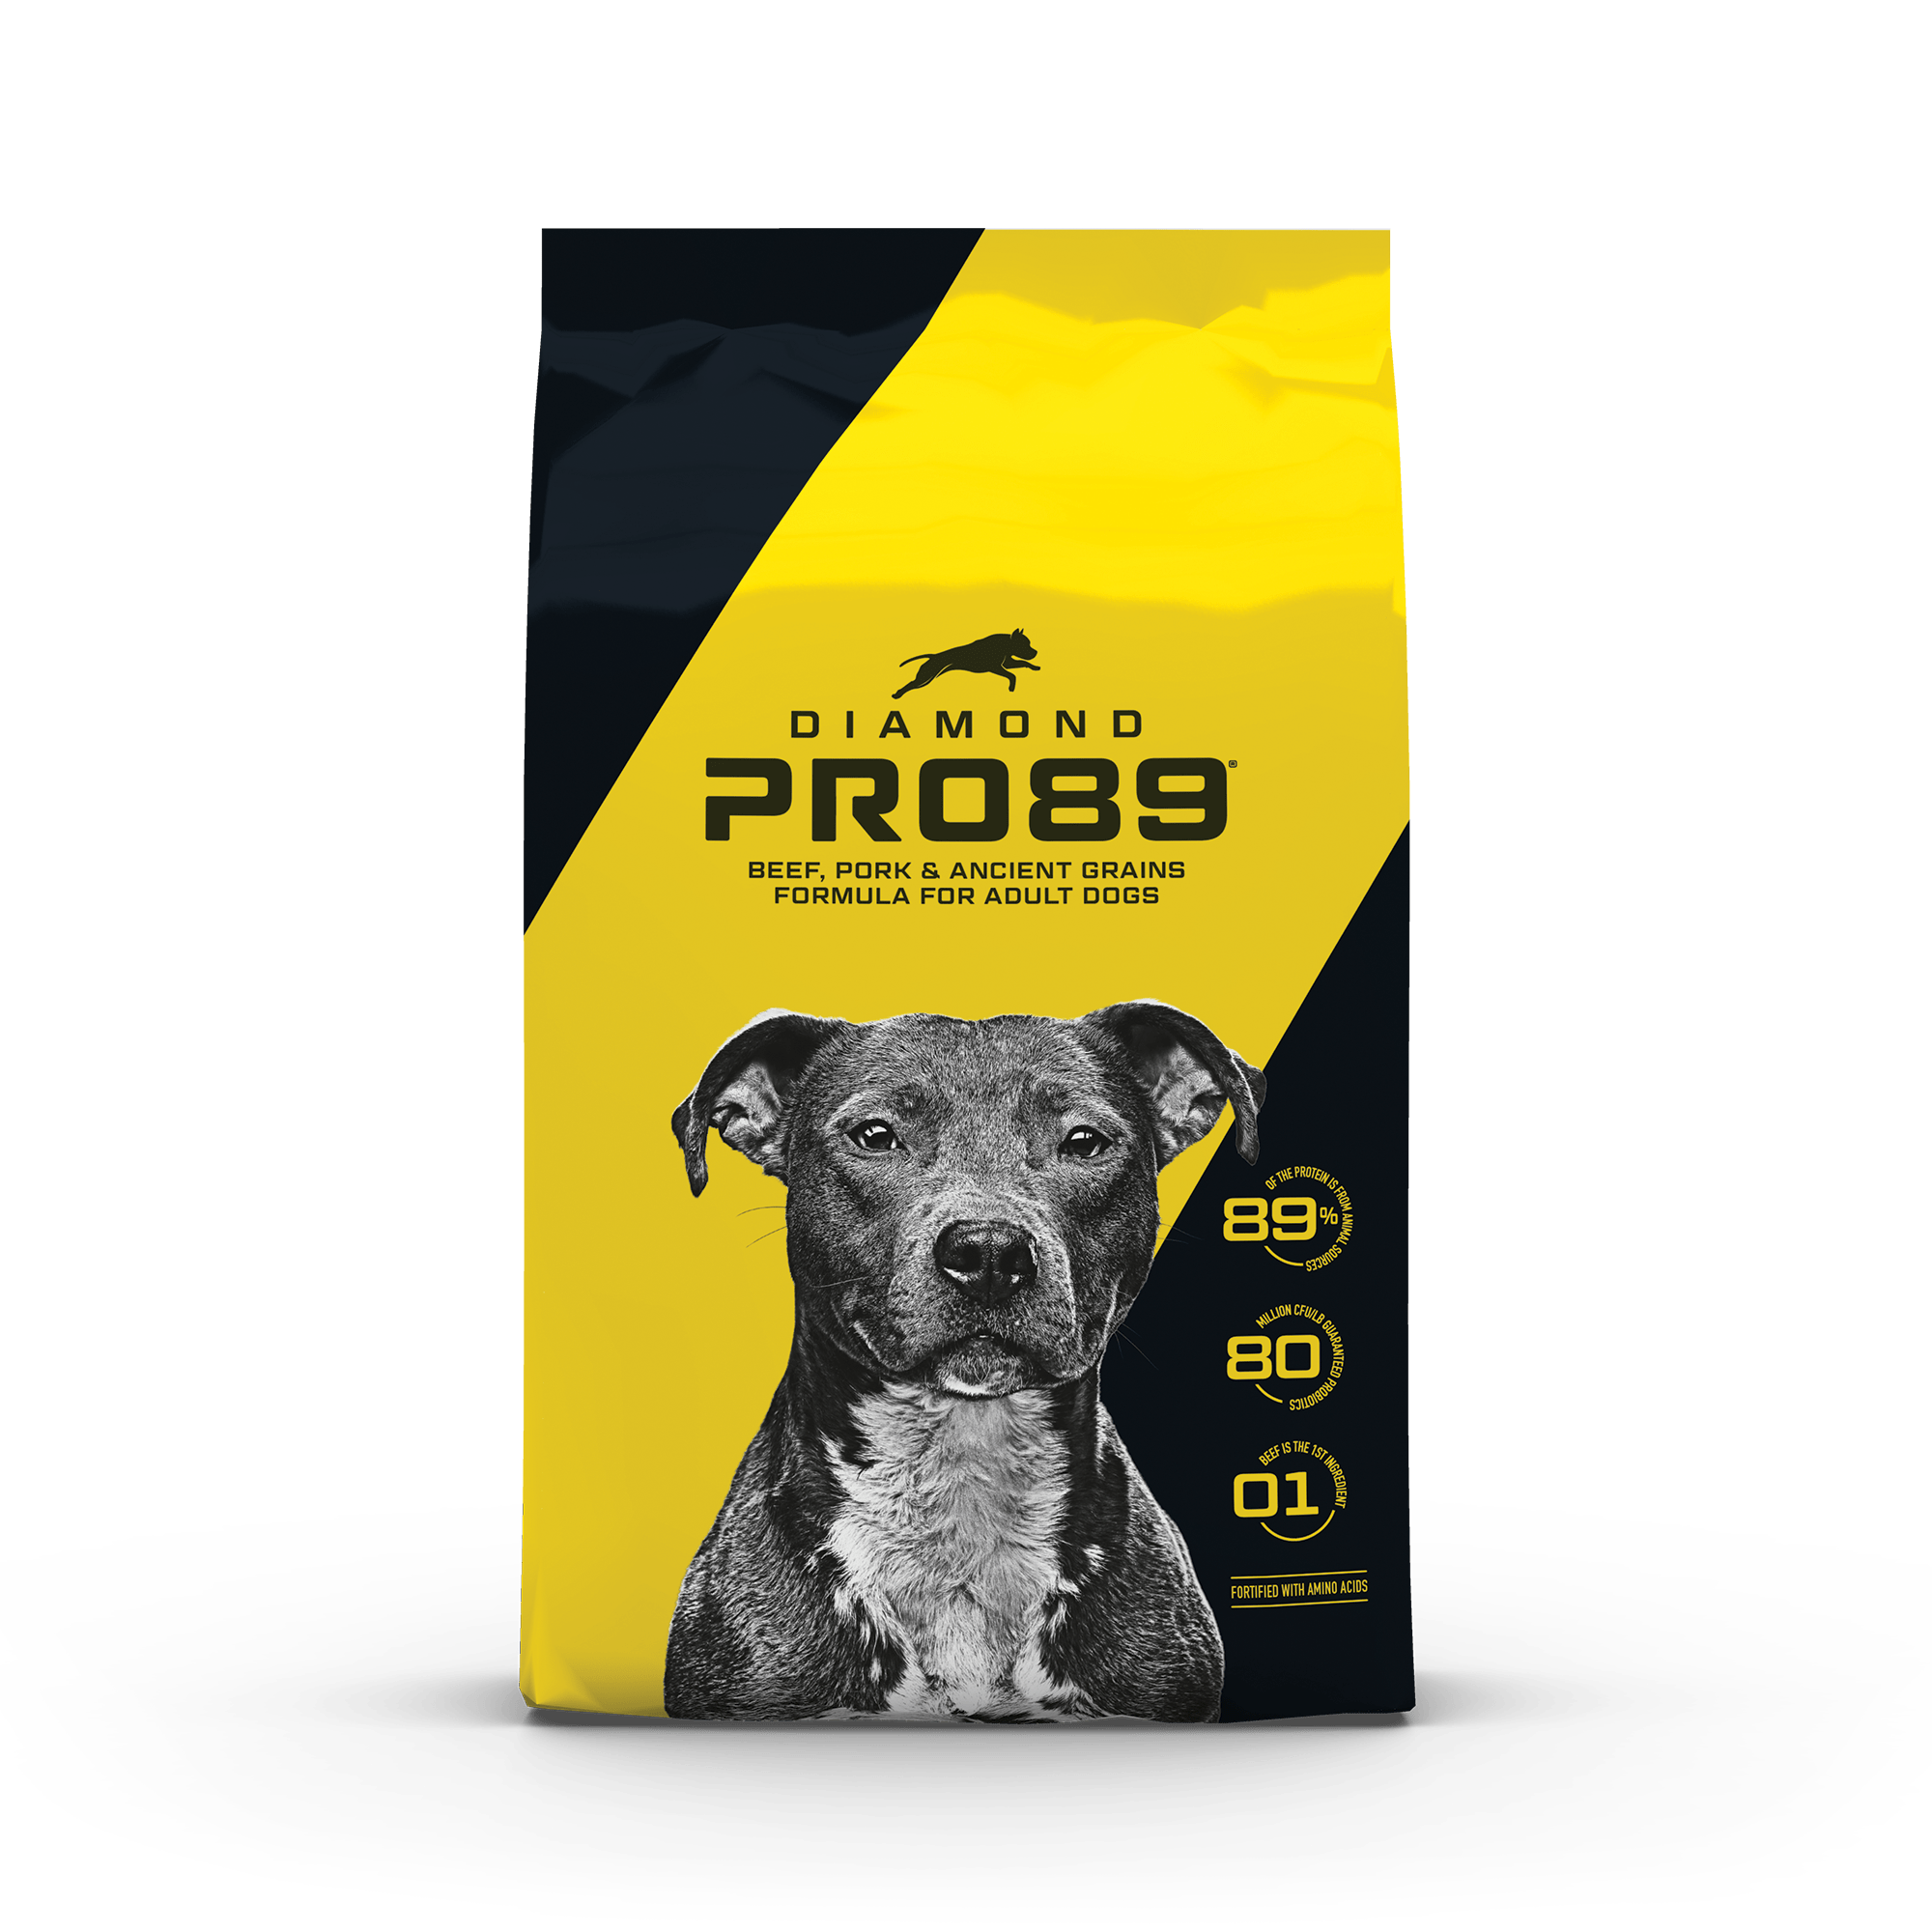 Diamond Pro89 Beef, Pork & Ancient Grains Formula for Adult Dogs product packaging